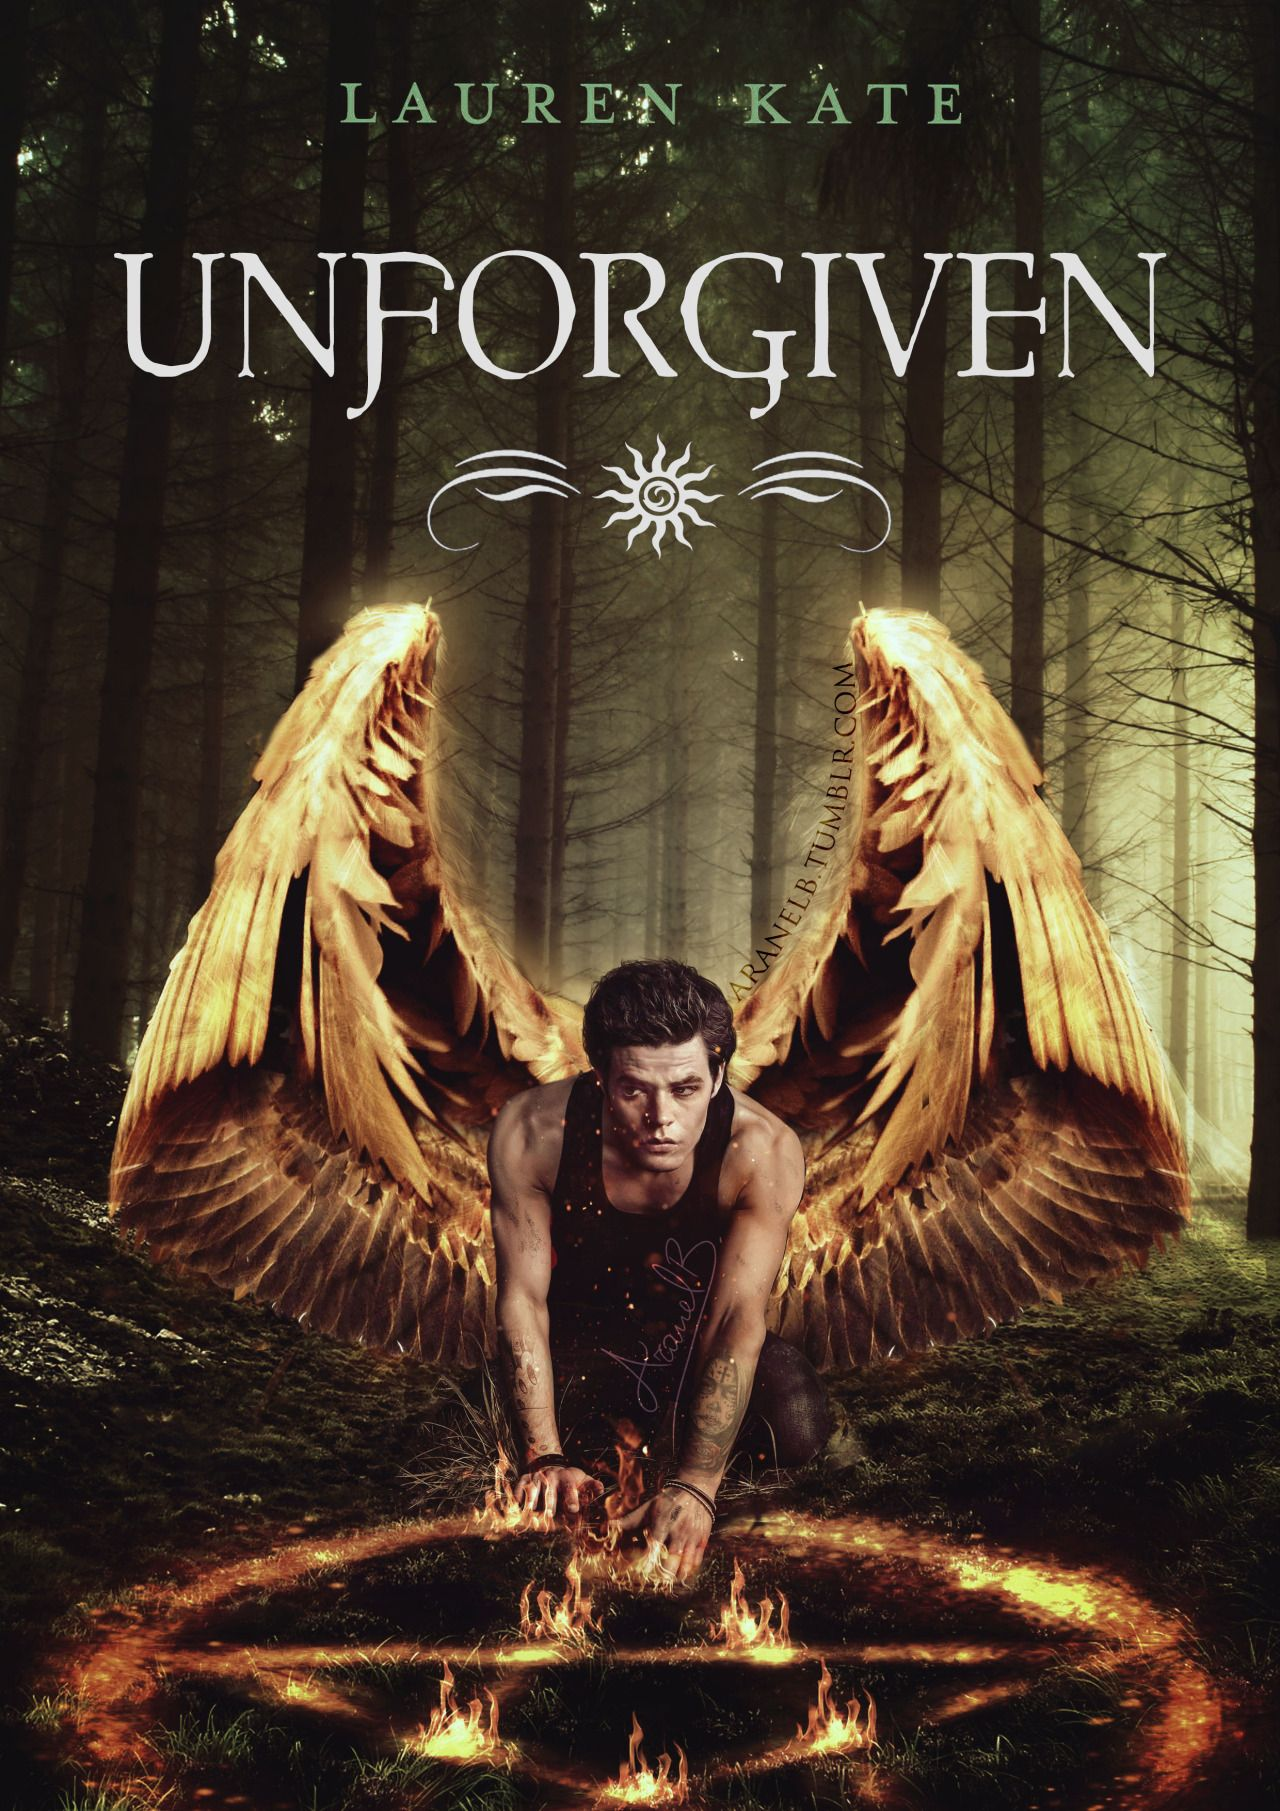 Aranelb Fanmade Of Unforgiven By Lauren Kate Cam Looks Awesome